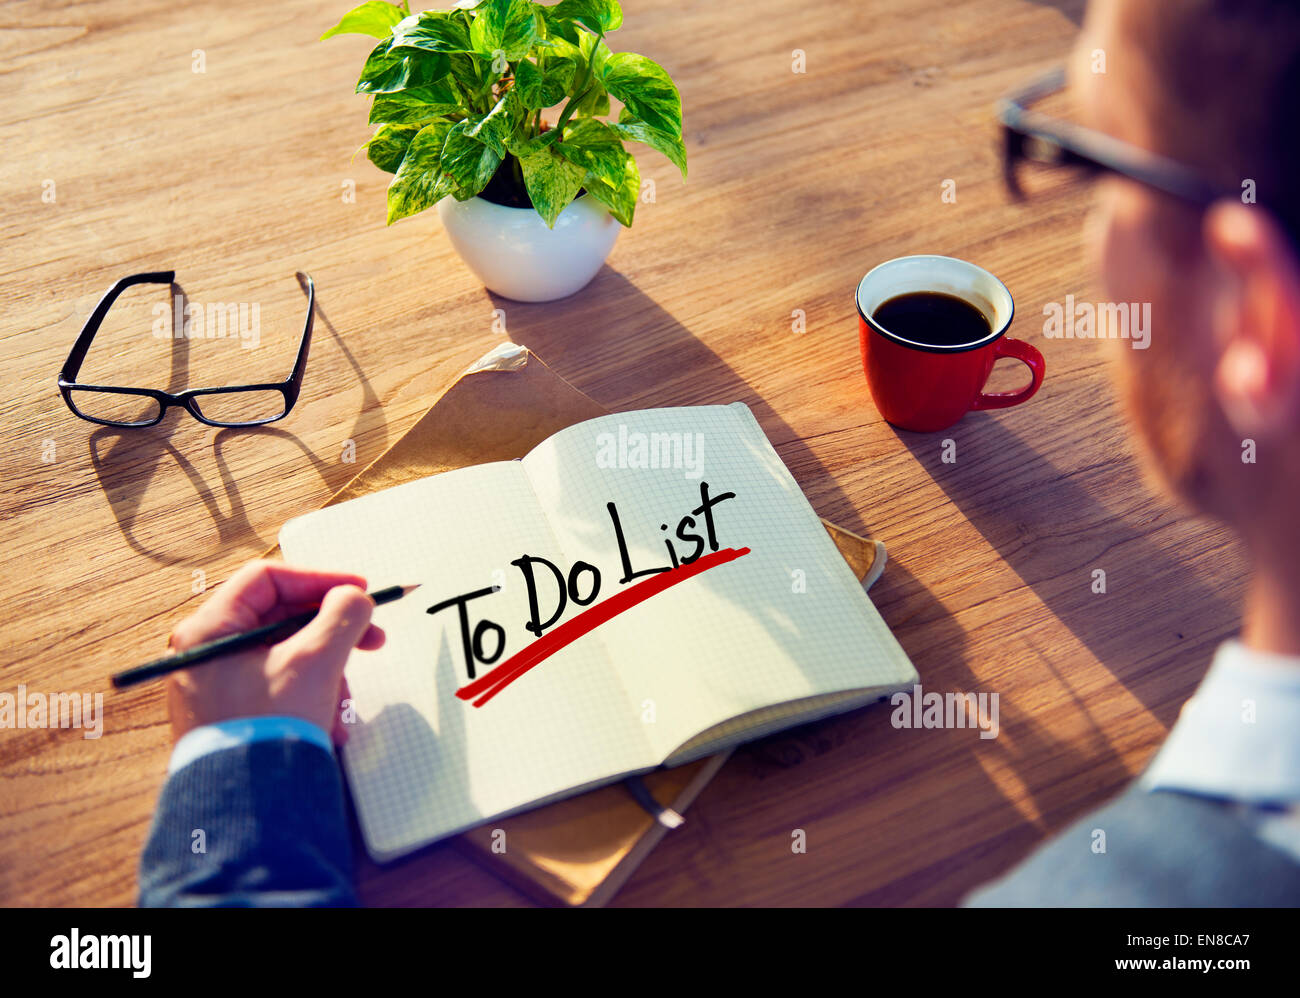 A Man Brainstorming about To Do List - Stock Image